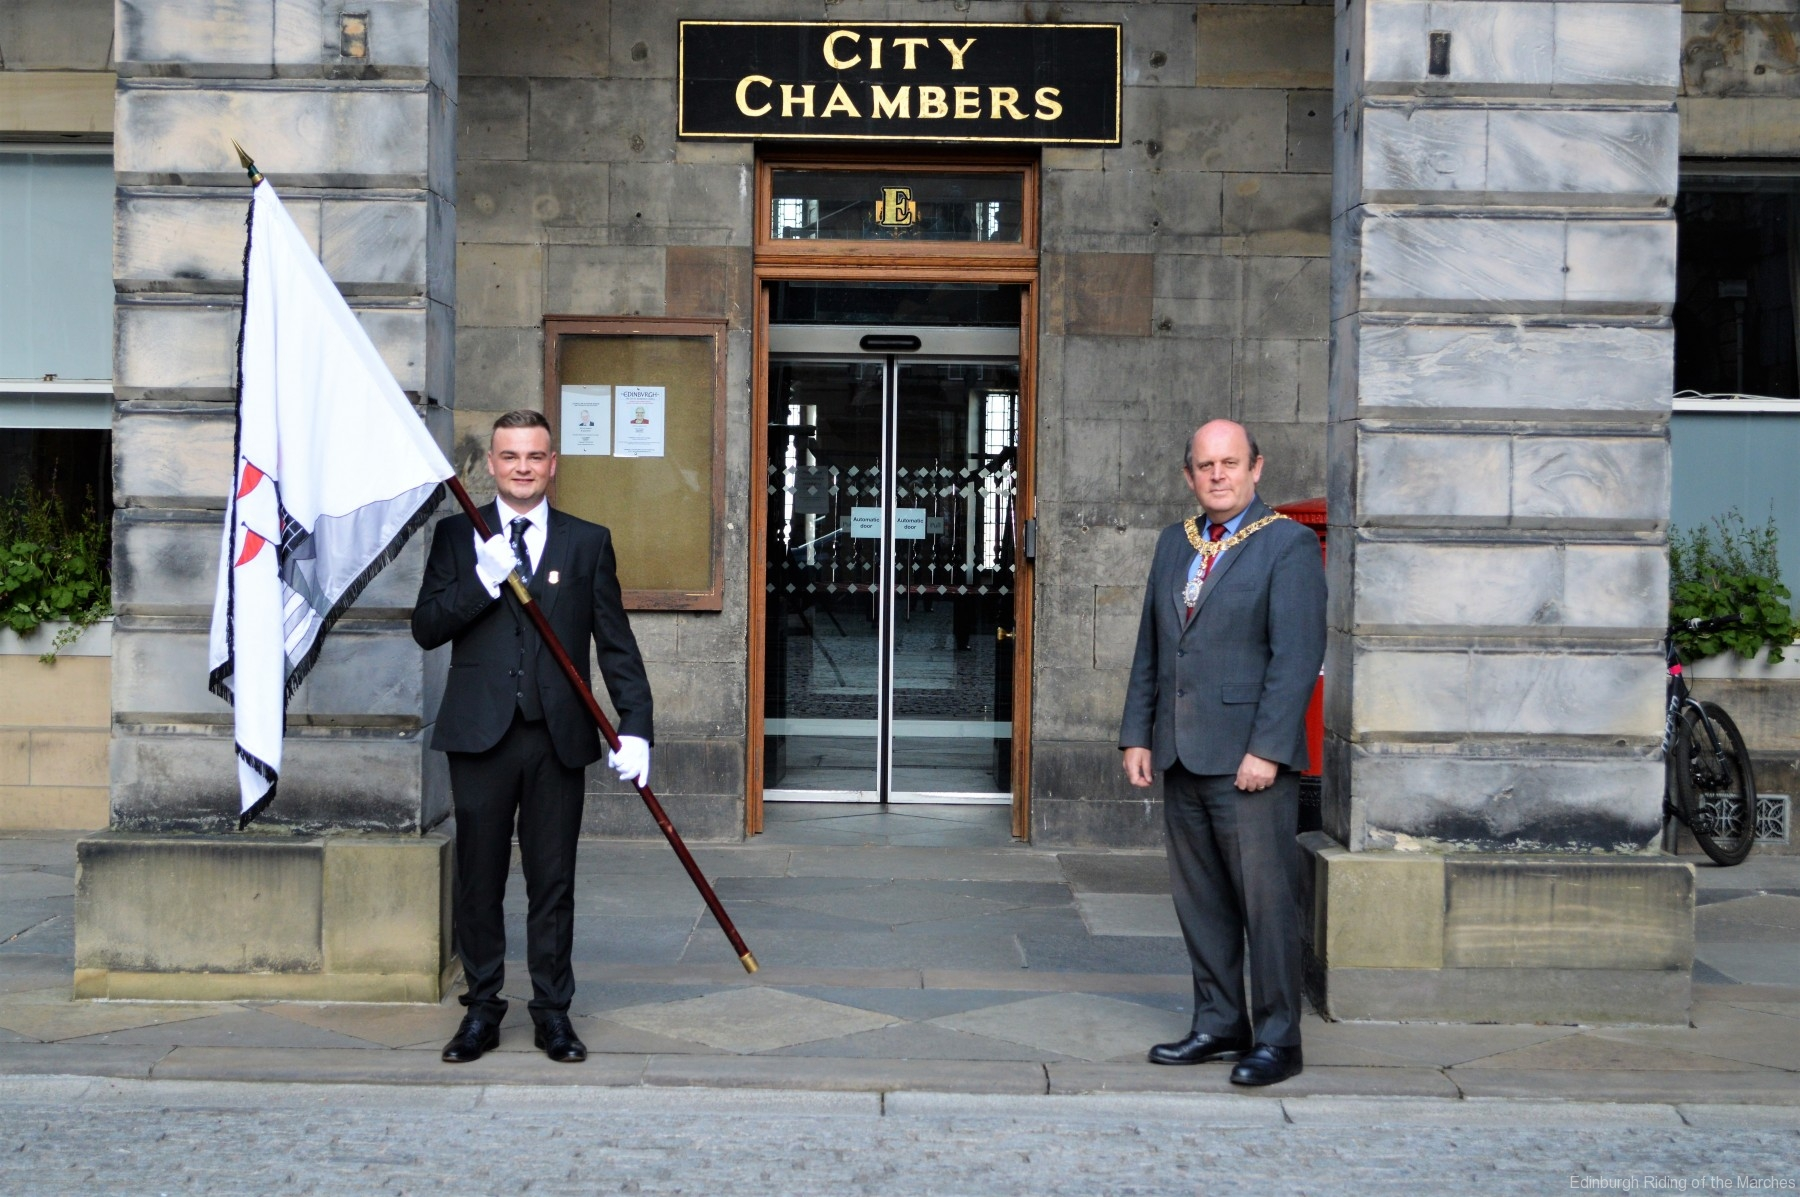 2021 Captain Elect, Jay Sturgeon and Edinburgh Lord Provost, Frank Ross